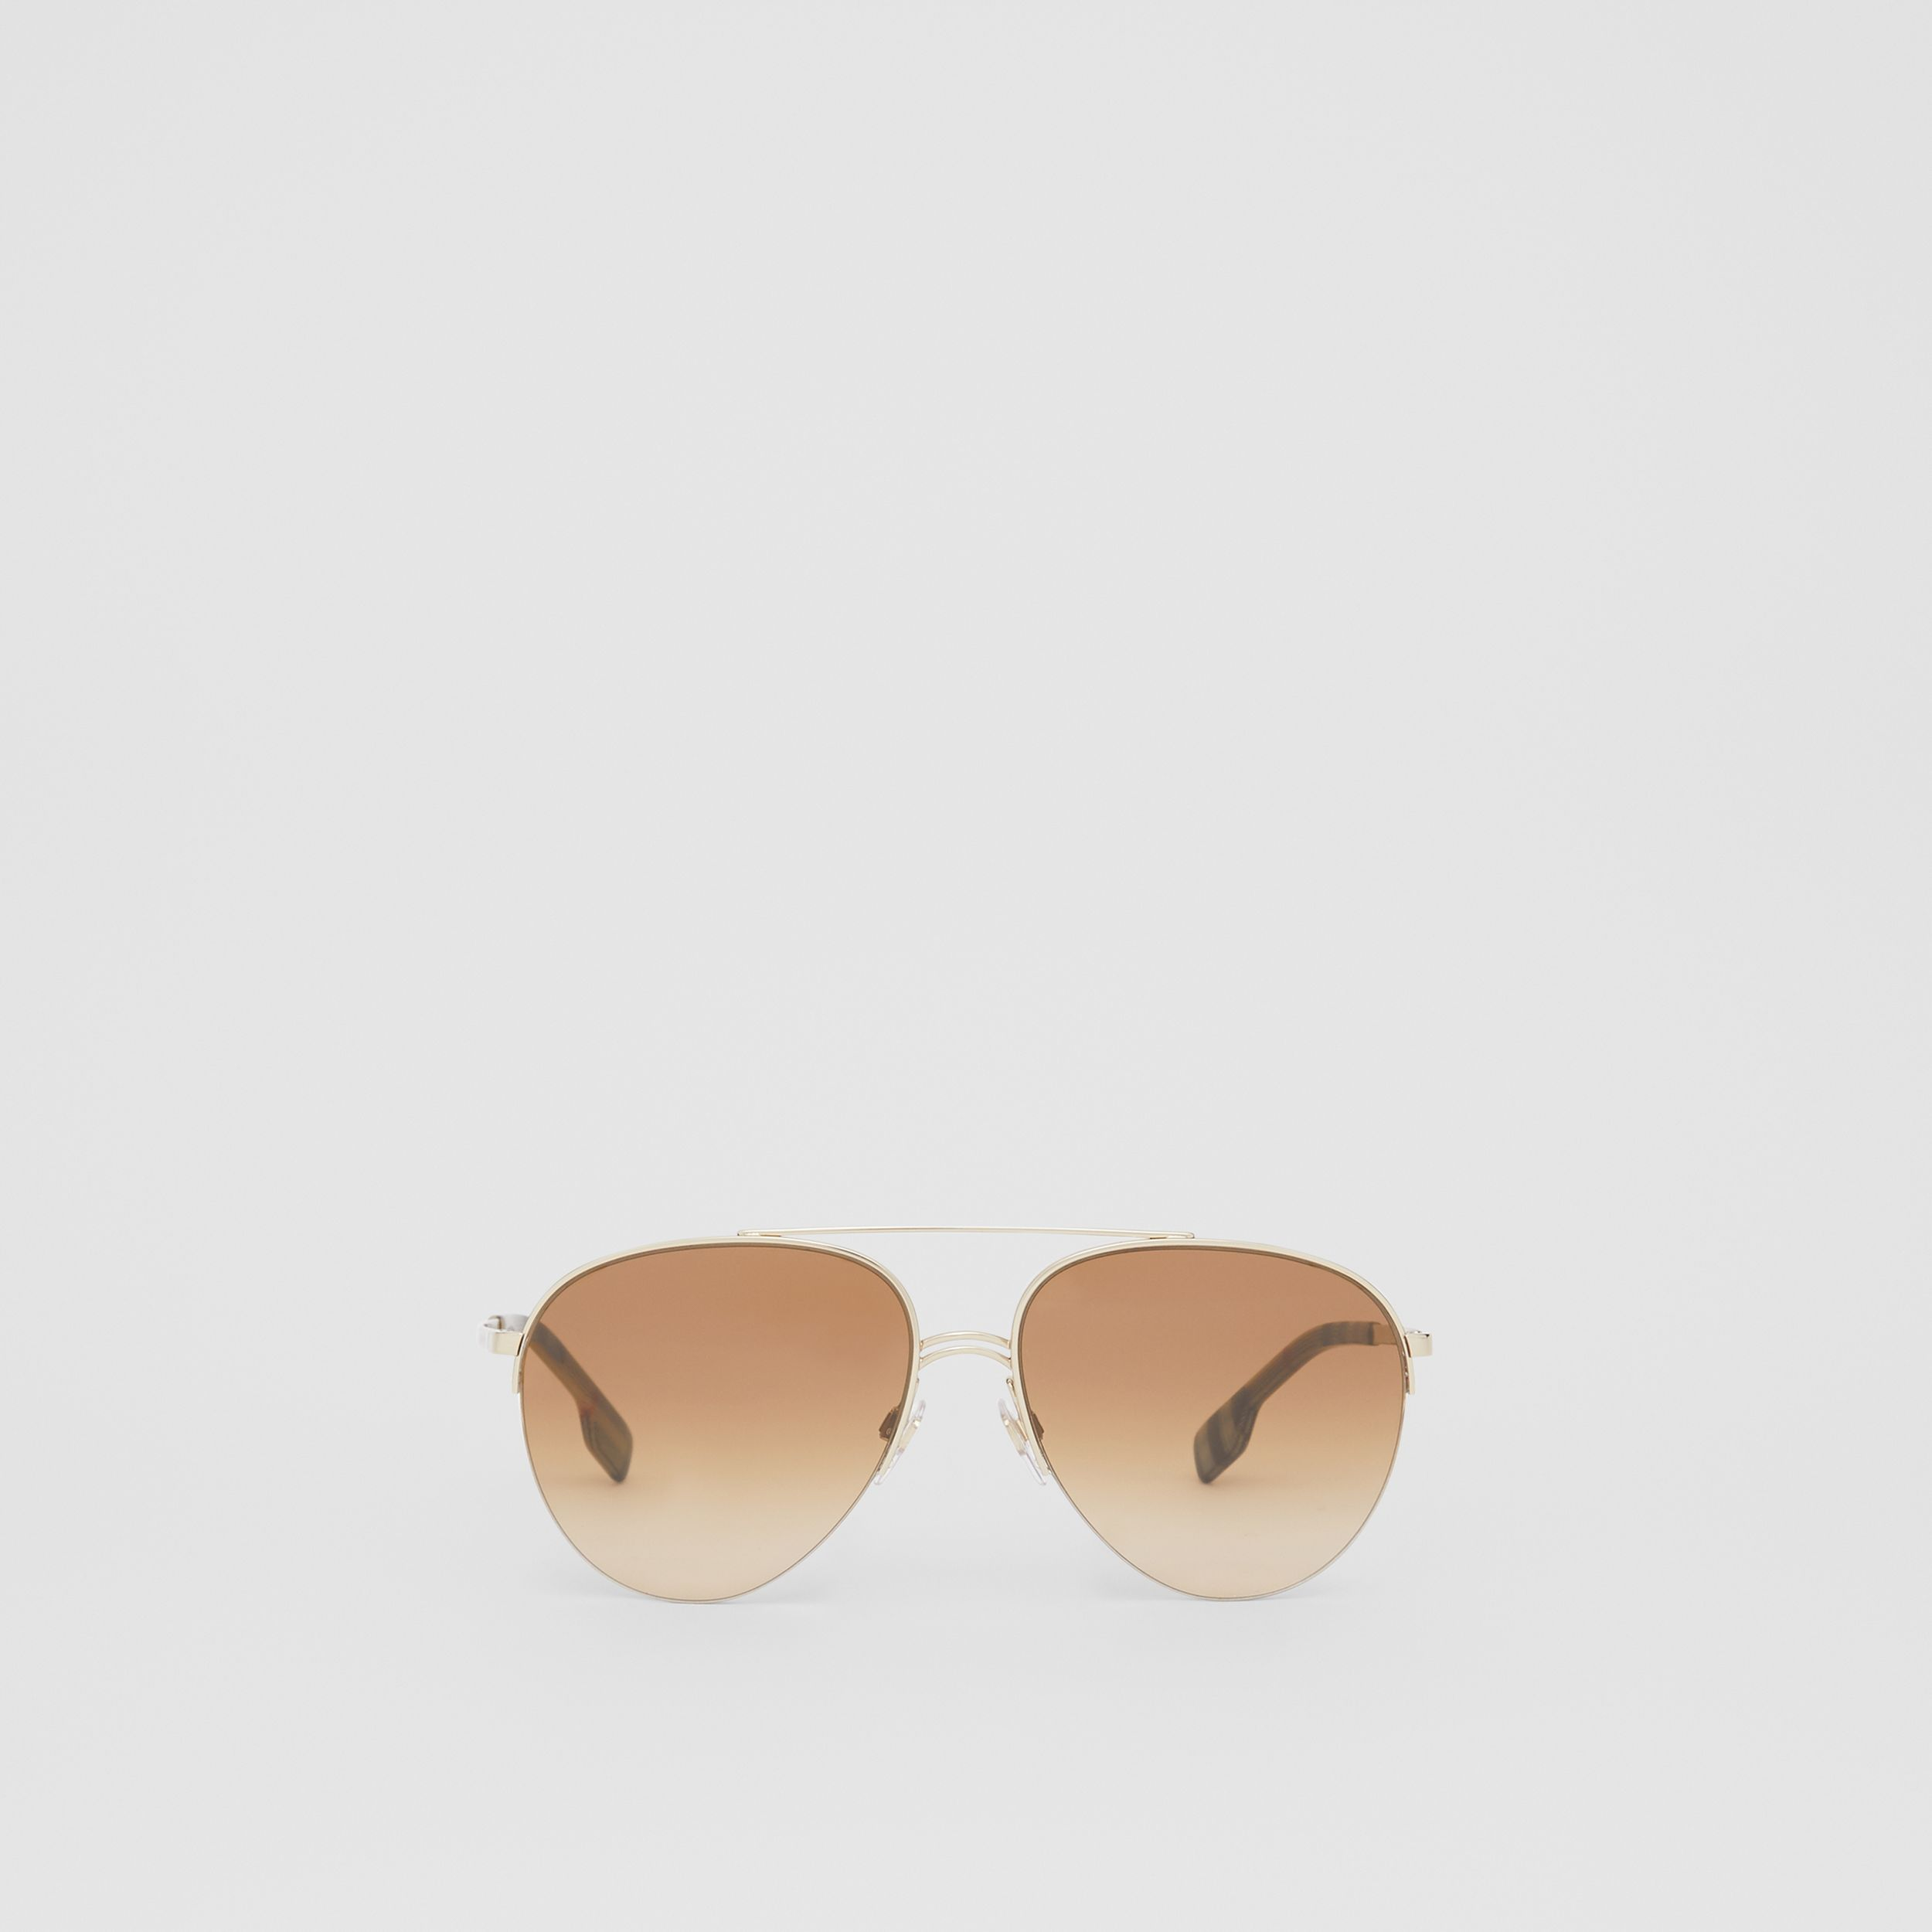 Top Bar Detail Pilot Sunglasses in Light Brown - Women | Burberry Australia - 1